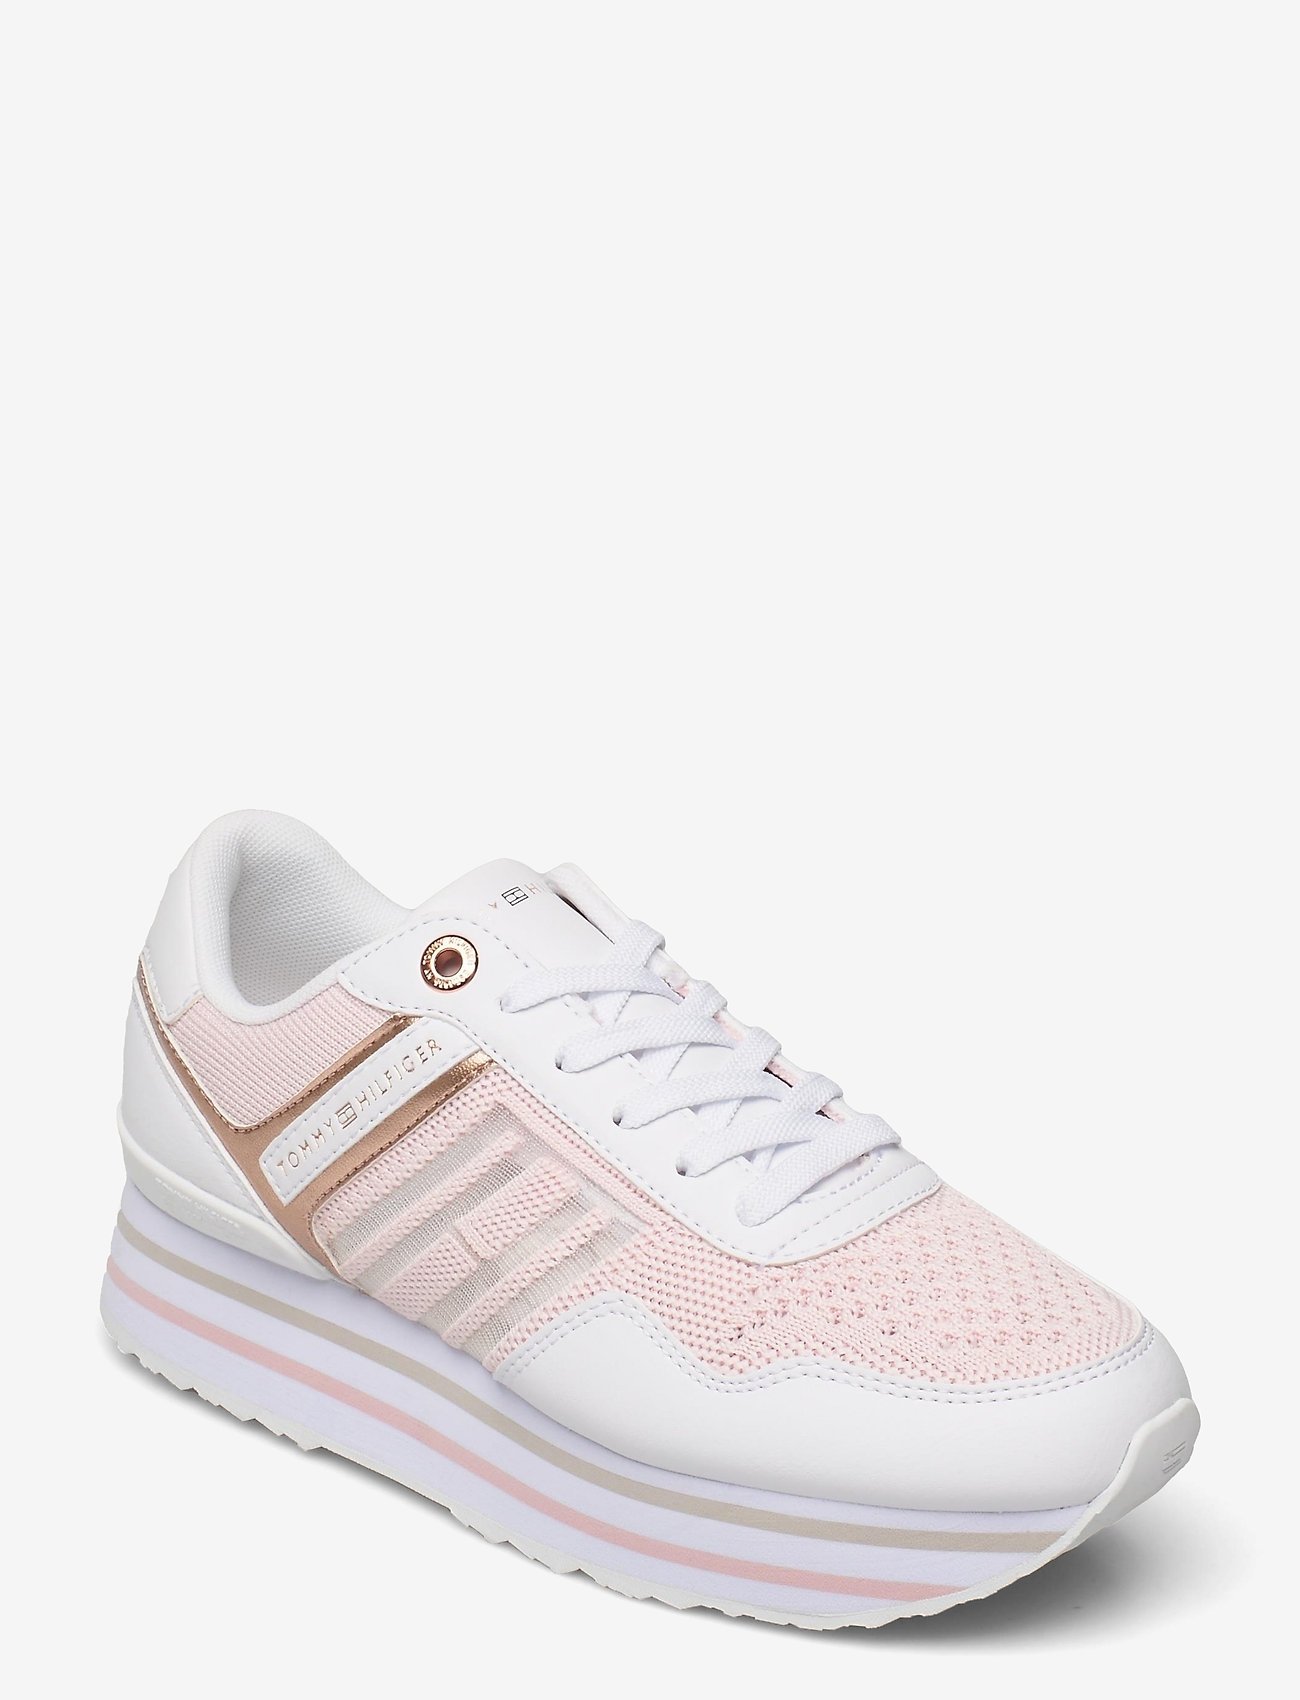 Tommy Hilfiger - KNITTED FLATFORM SNEAKER - low top sneakers - light pink - 0